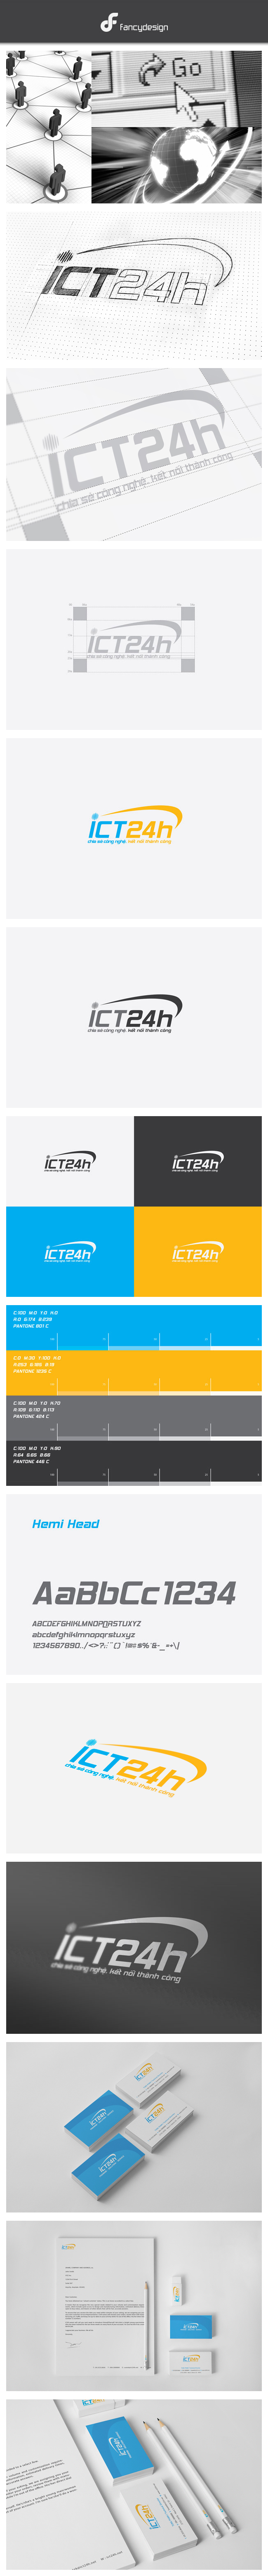 ICT24H is an information technology in Vietnam. ICT24H is a IT service company, provides the qua ...